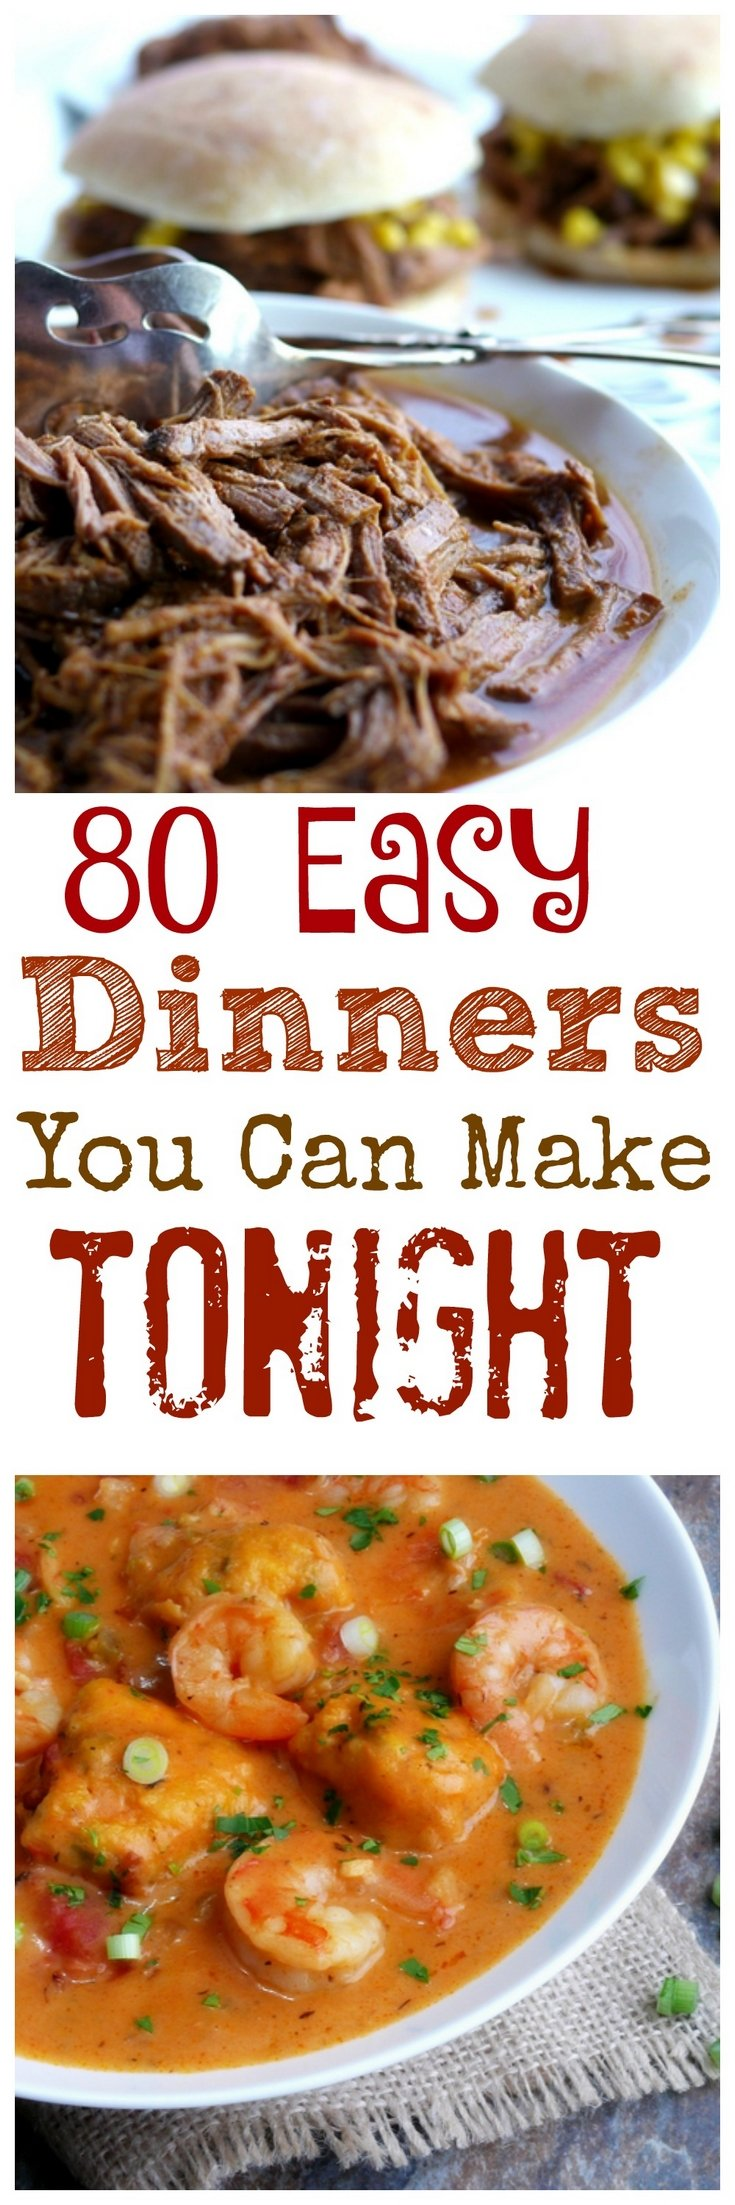 What's for dinner is the most asked question in my house! Luckily these 80 Easy Dinners You Can Make Tonight answers the age old question quite nicely. Enjoy these delicious meals from NoblePig.com. via @cmpollak1